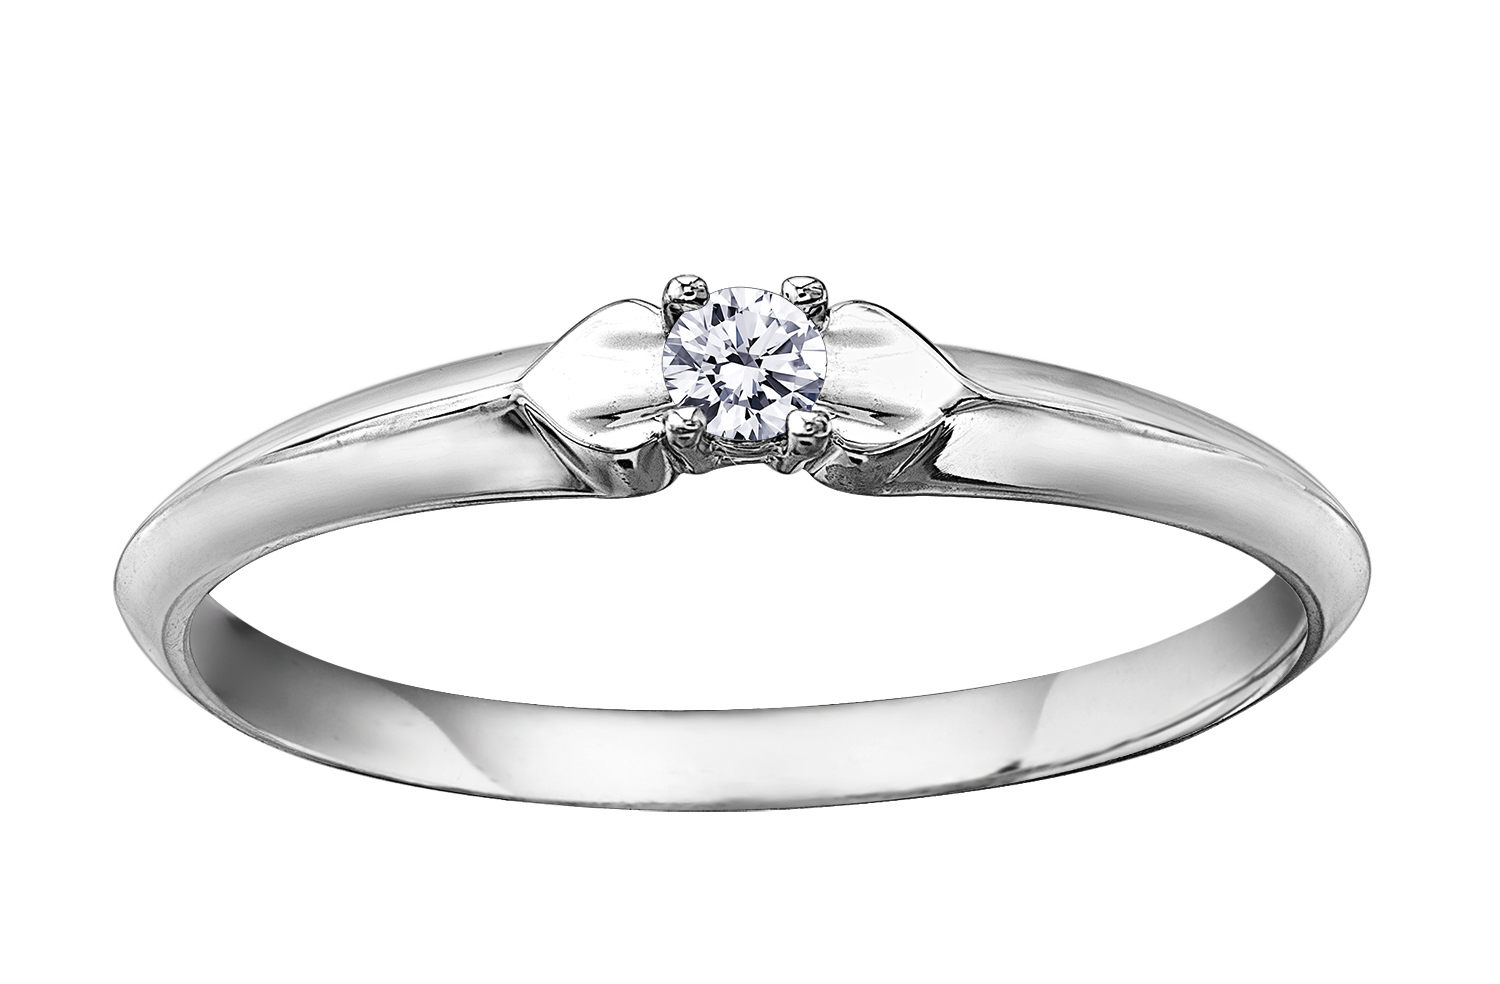 Engagement ring - 10K white Gold & Canadian diamond 0.05 Carat T.W.